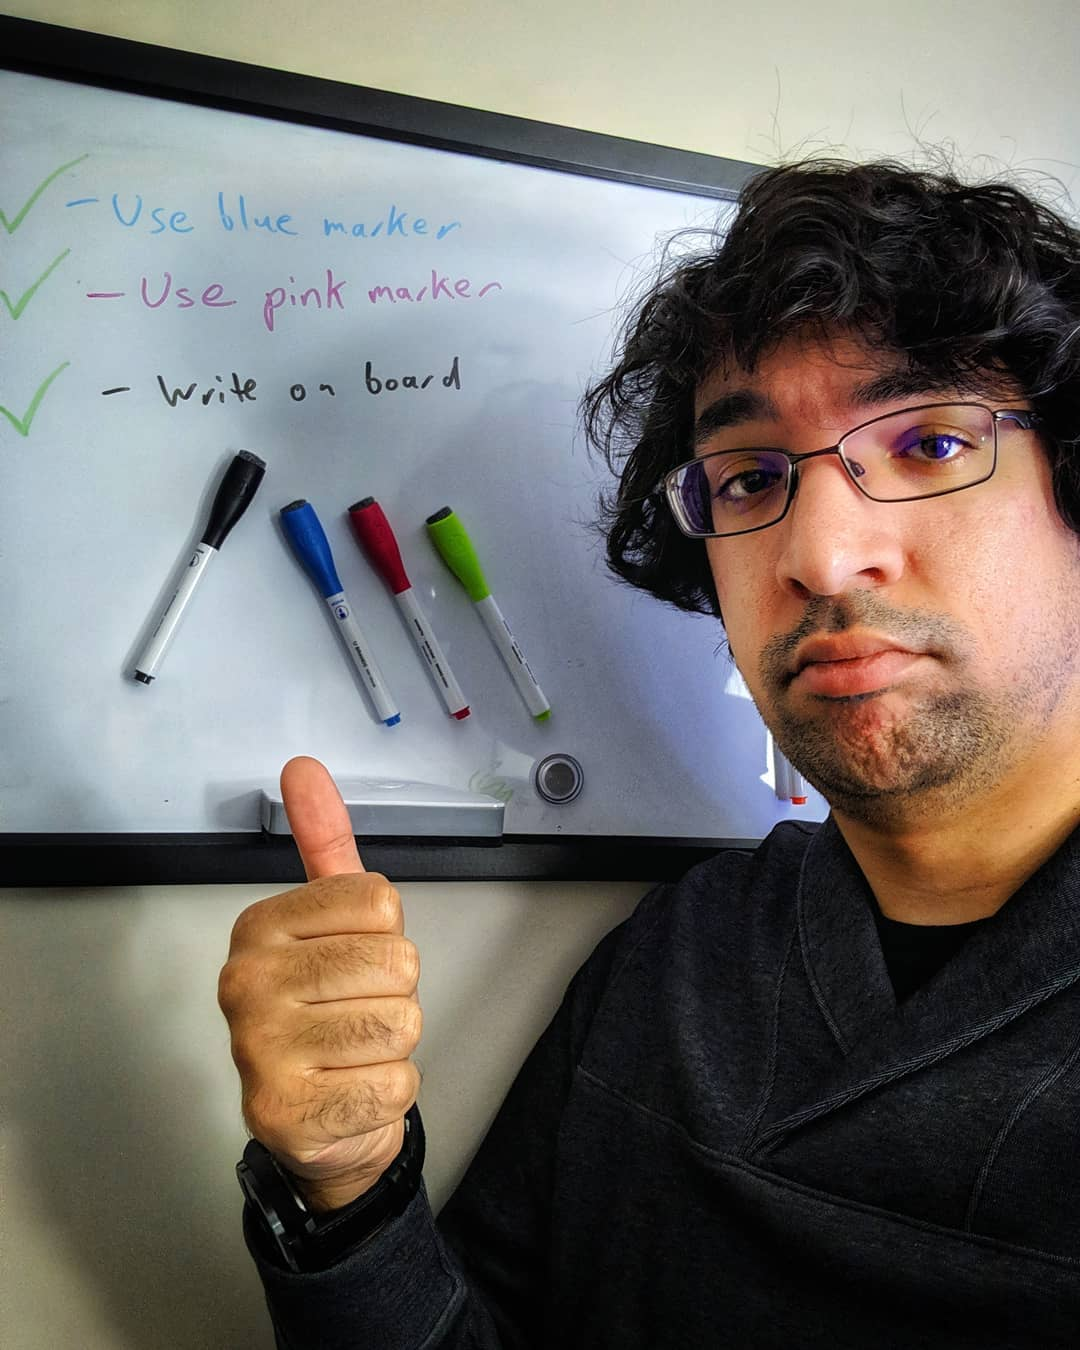 Photo of me pointing to a whiteboard with three completed tasks: Use blue marker, Use pink marker, Write on board.